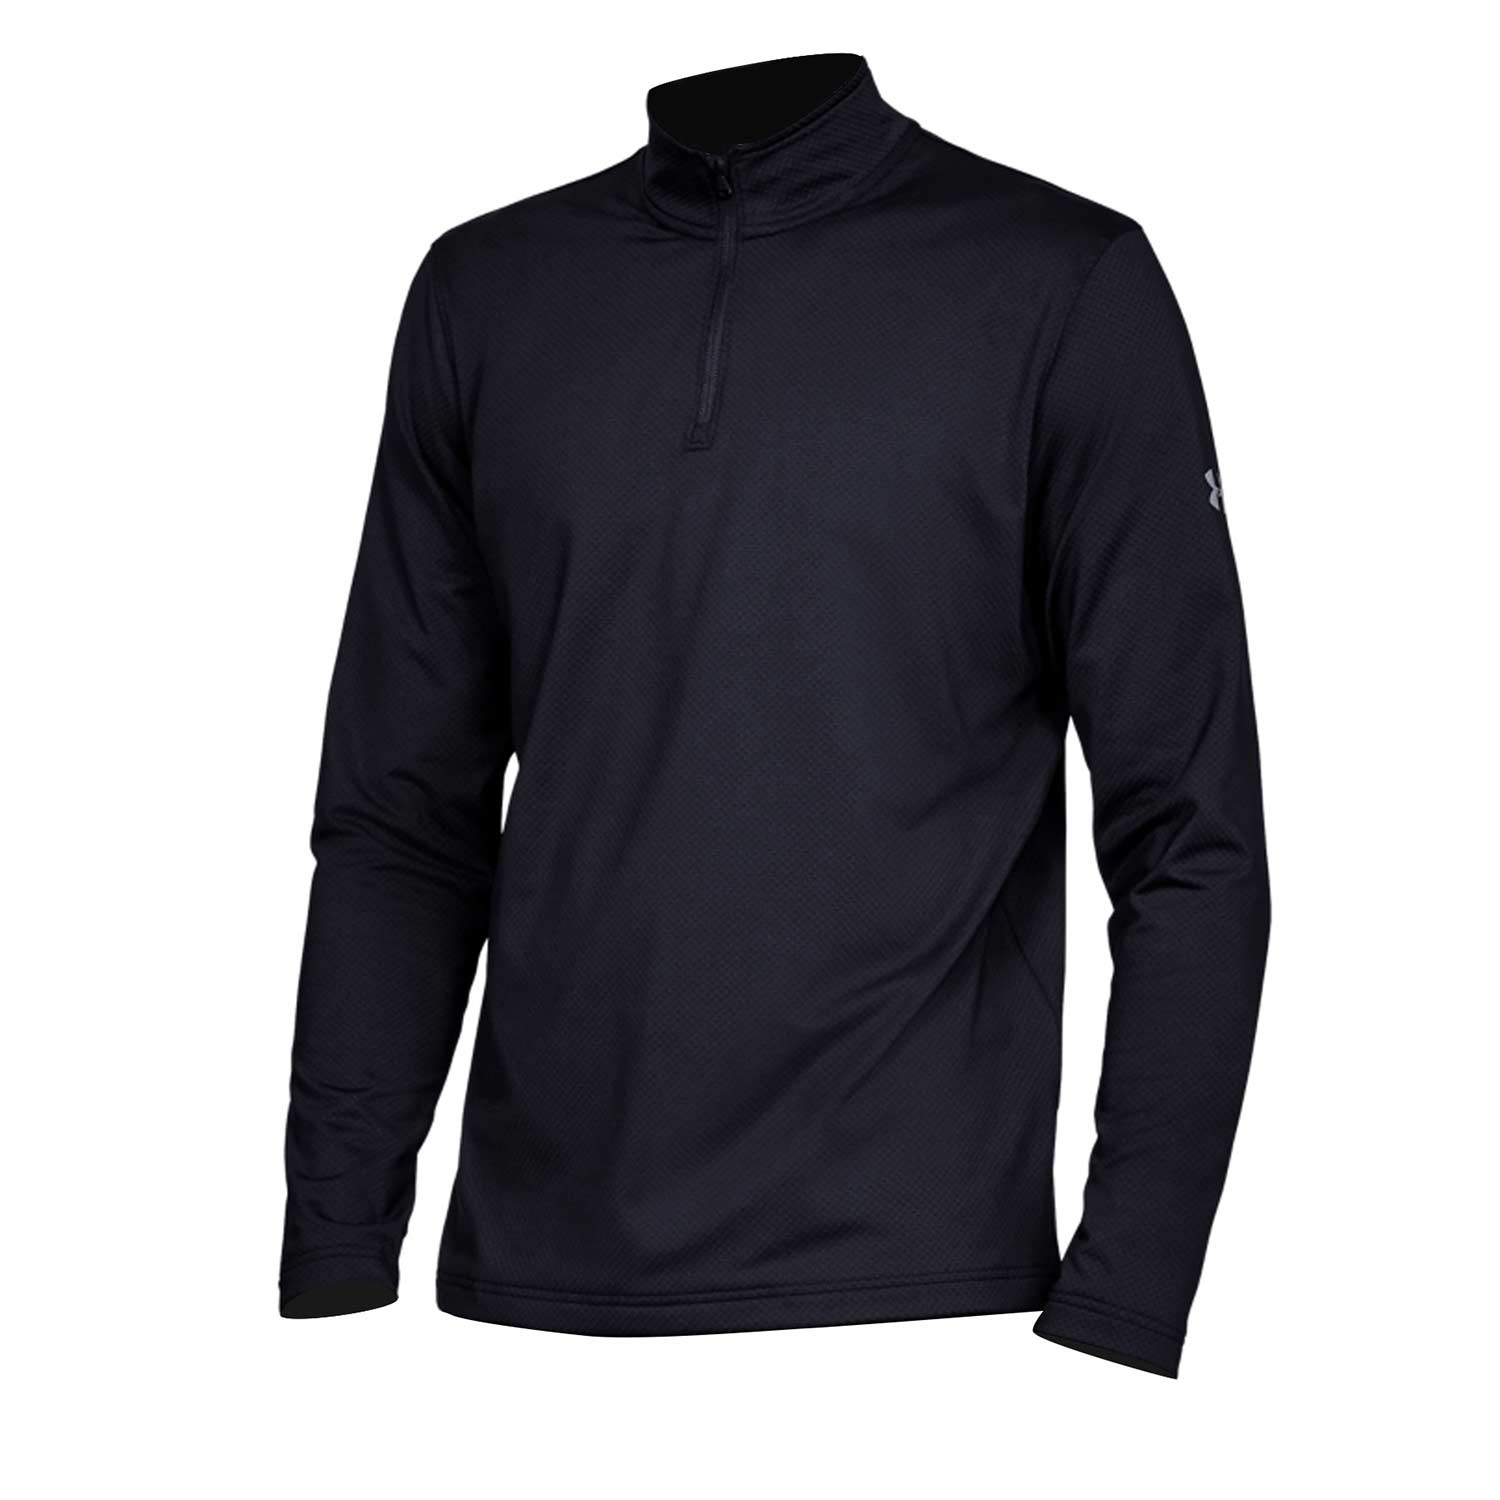 Under Armour Tac Lightweight 1/4 Zip Shirt